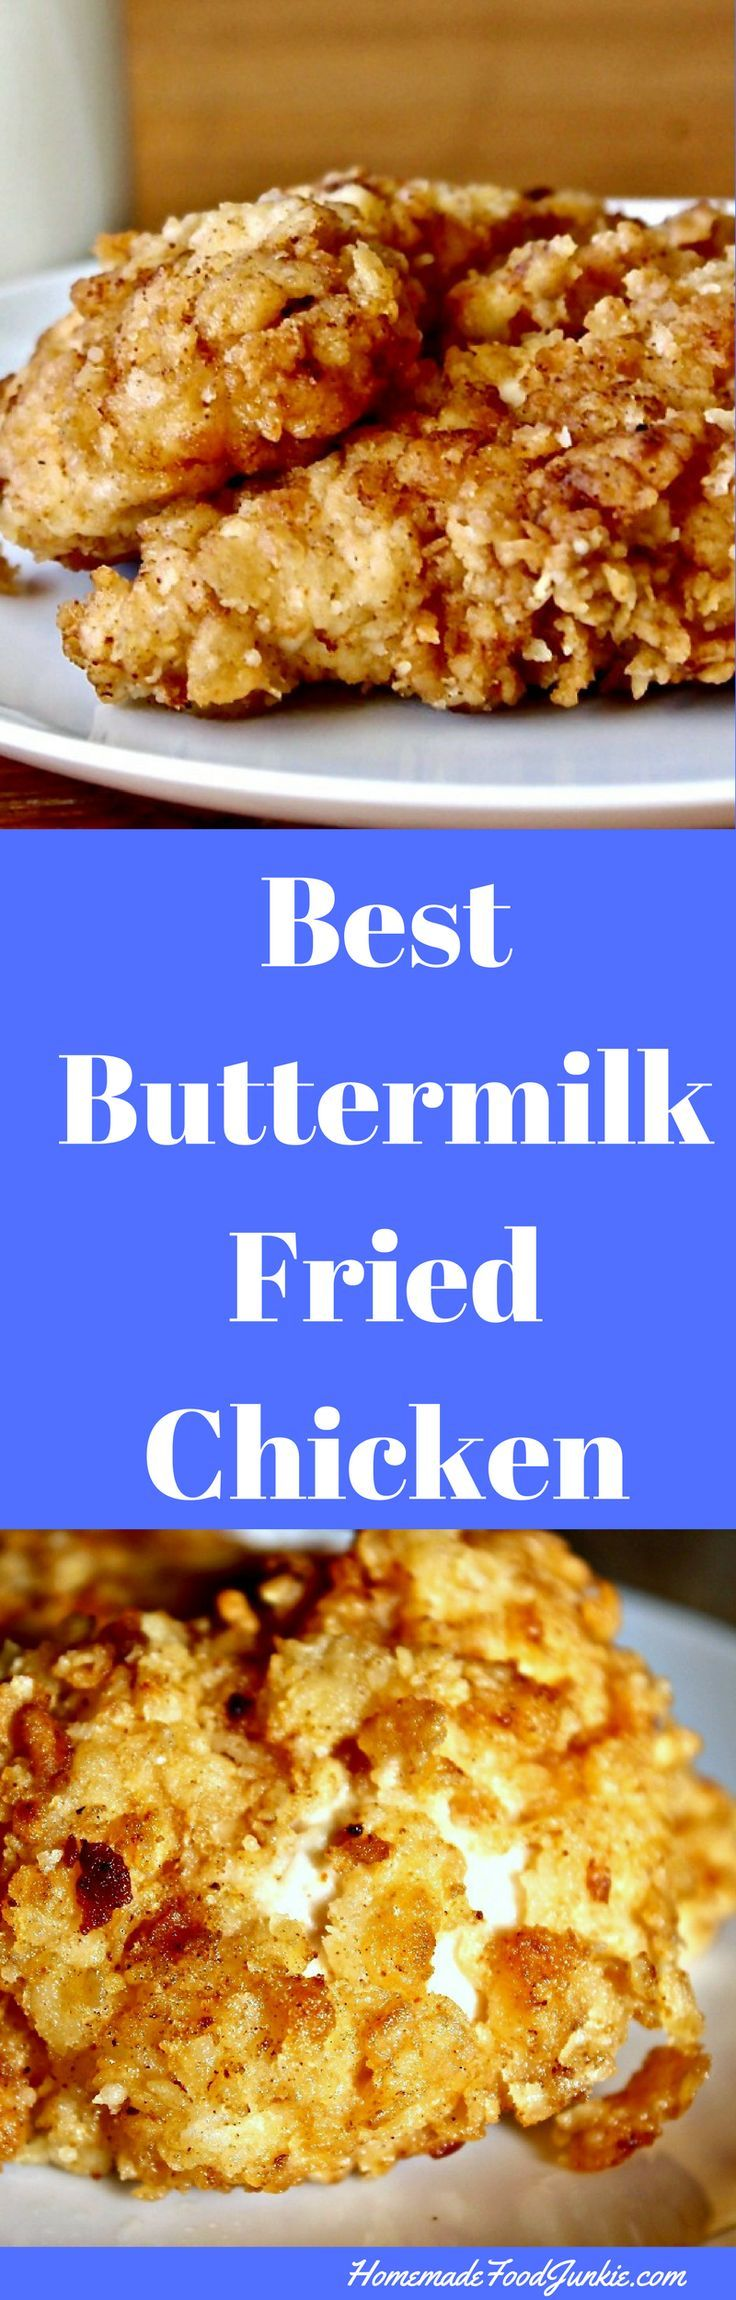 The Best Buttermilk Fried Chicken. Easy to do this family weeknight meal.